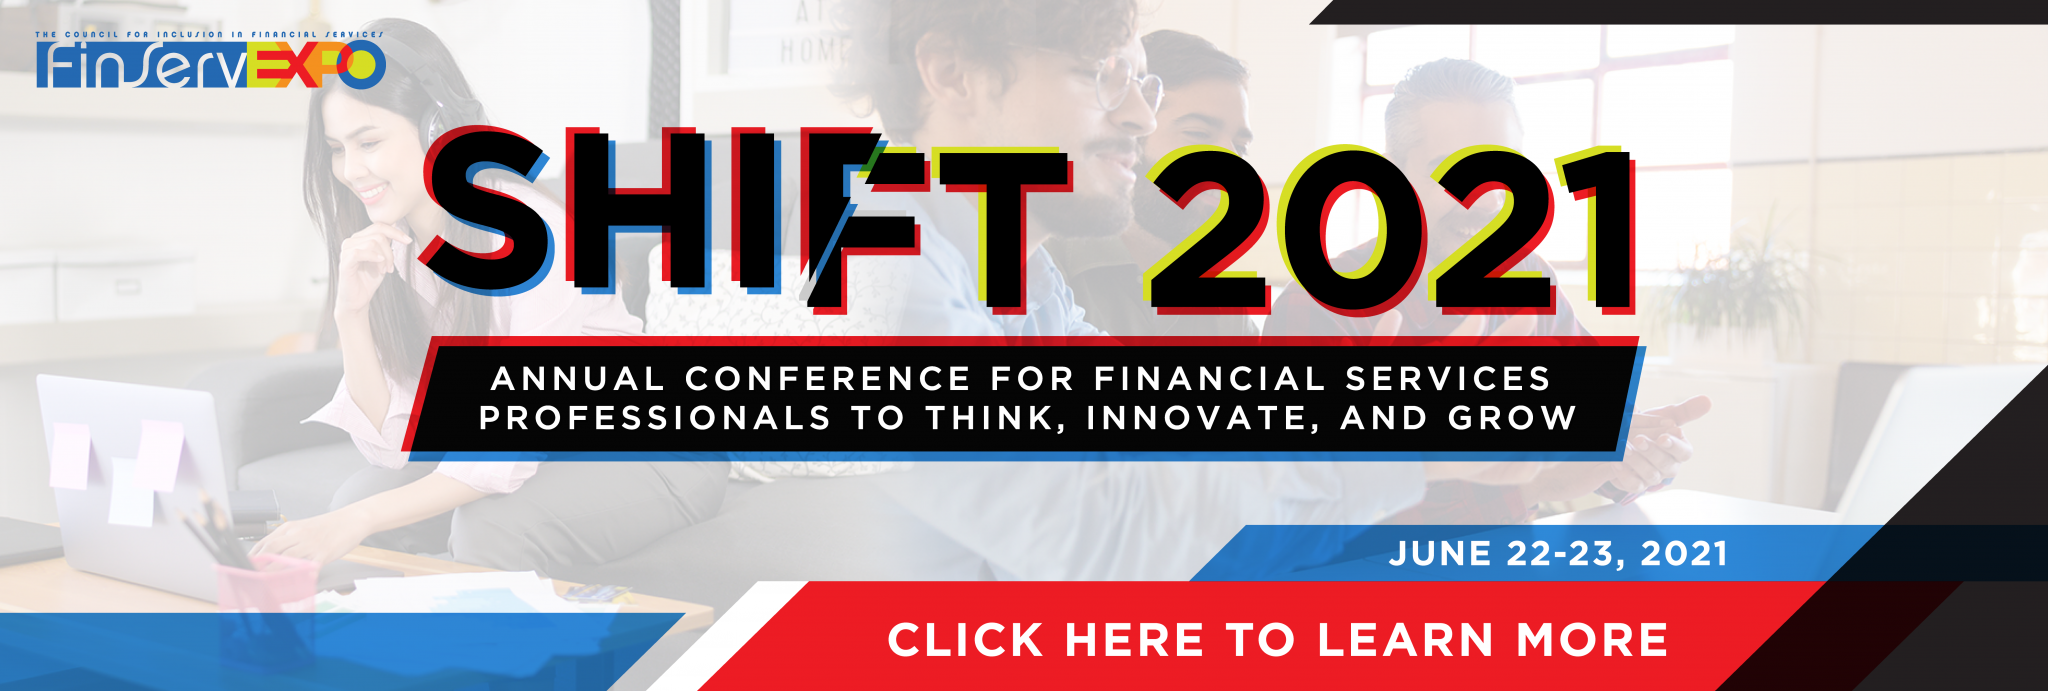 2021 FinServ Expo SHIFT presented by CIFS